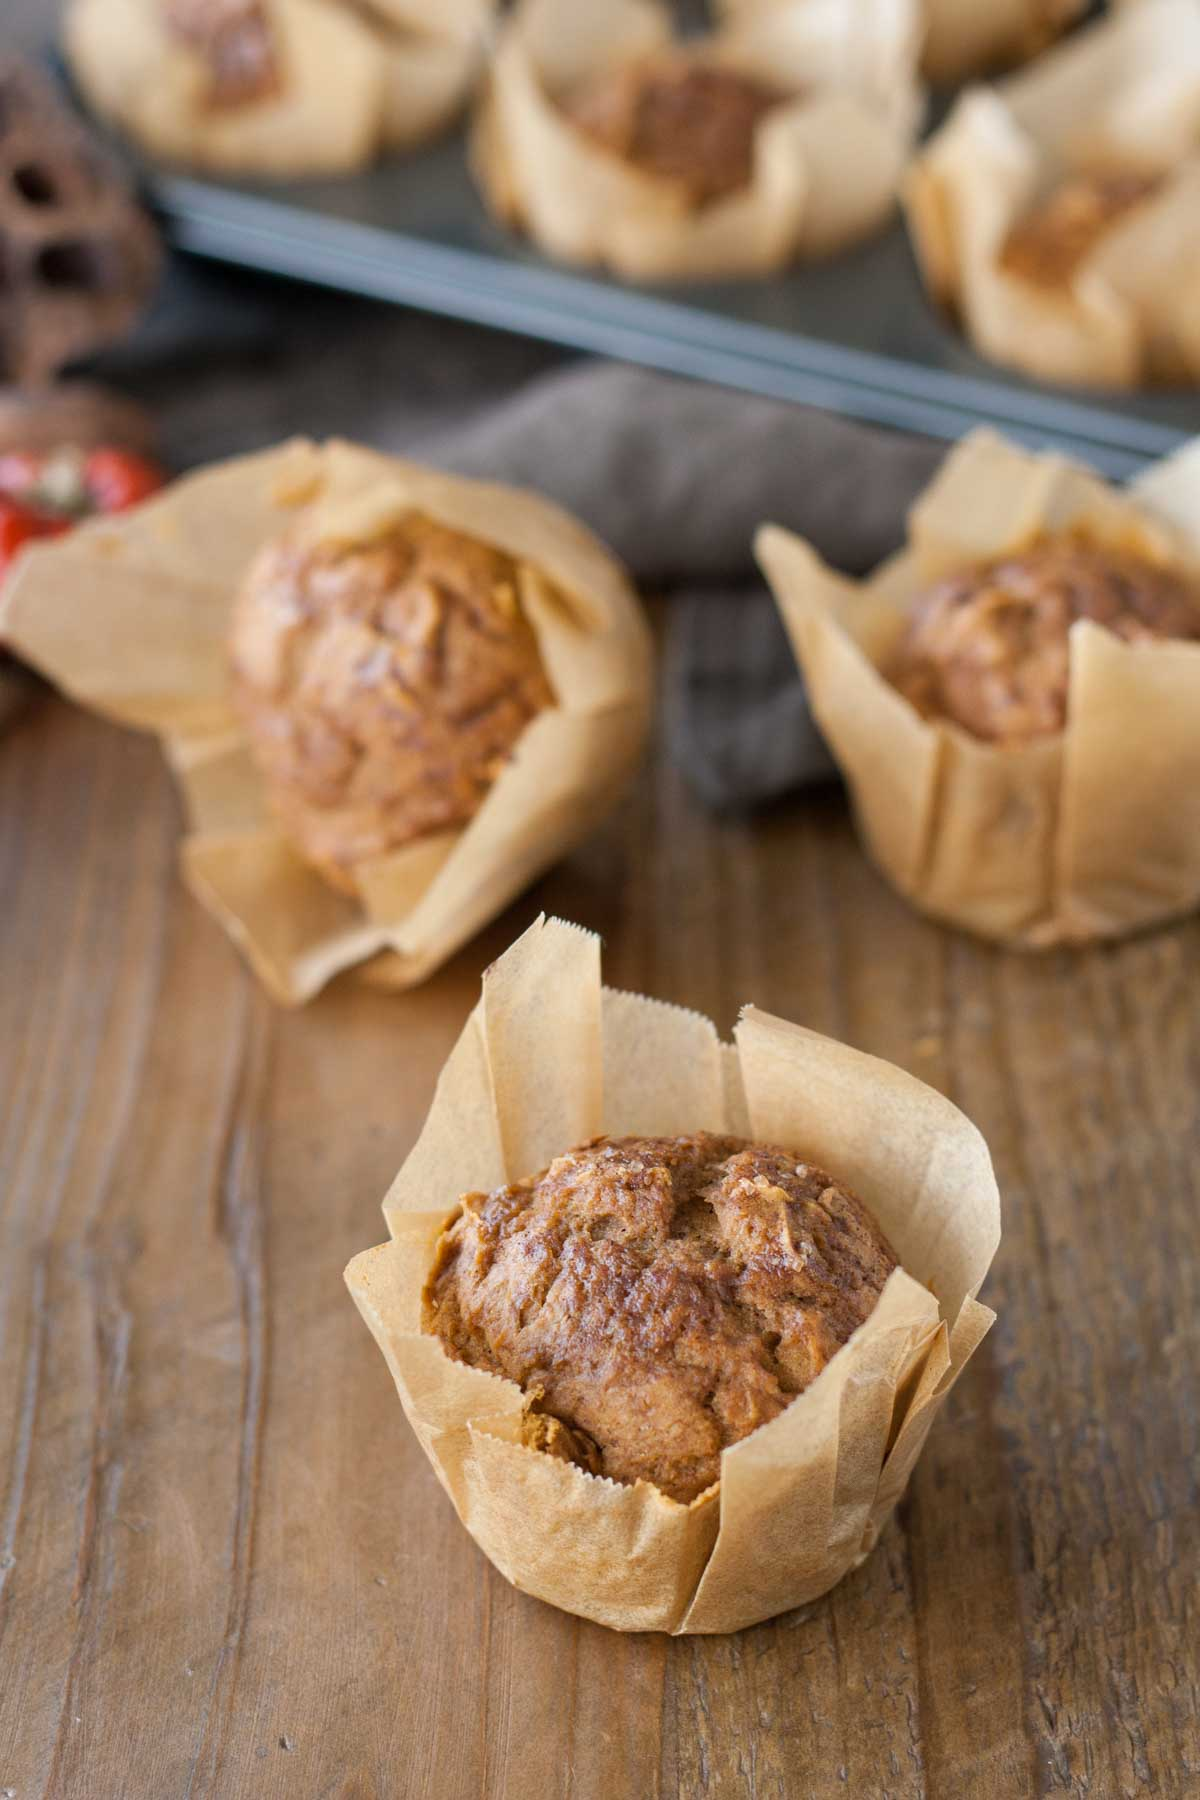 Muffins on a wooden table.